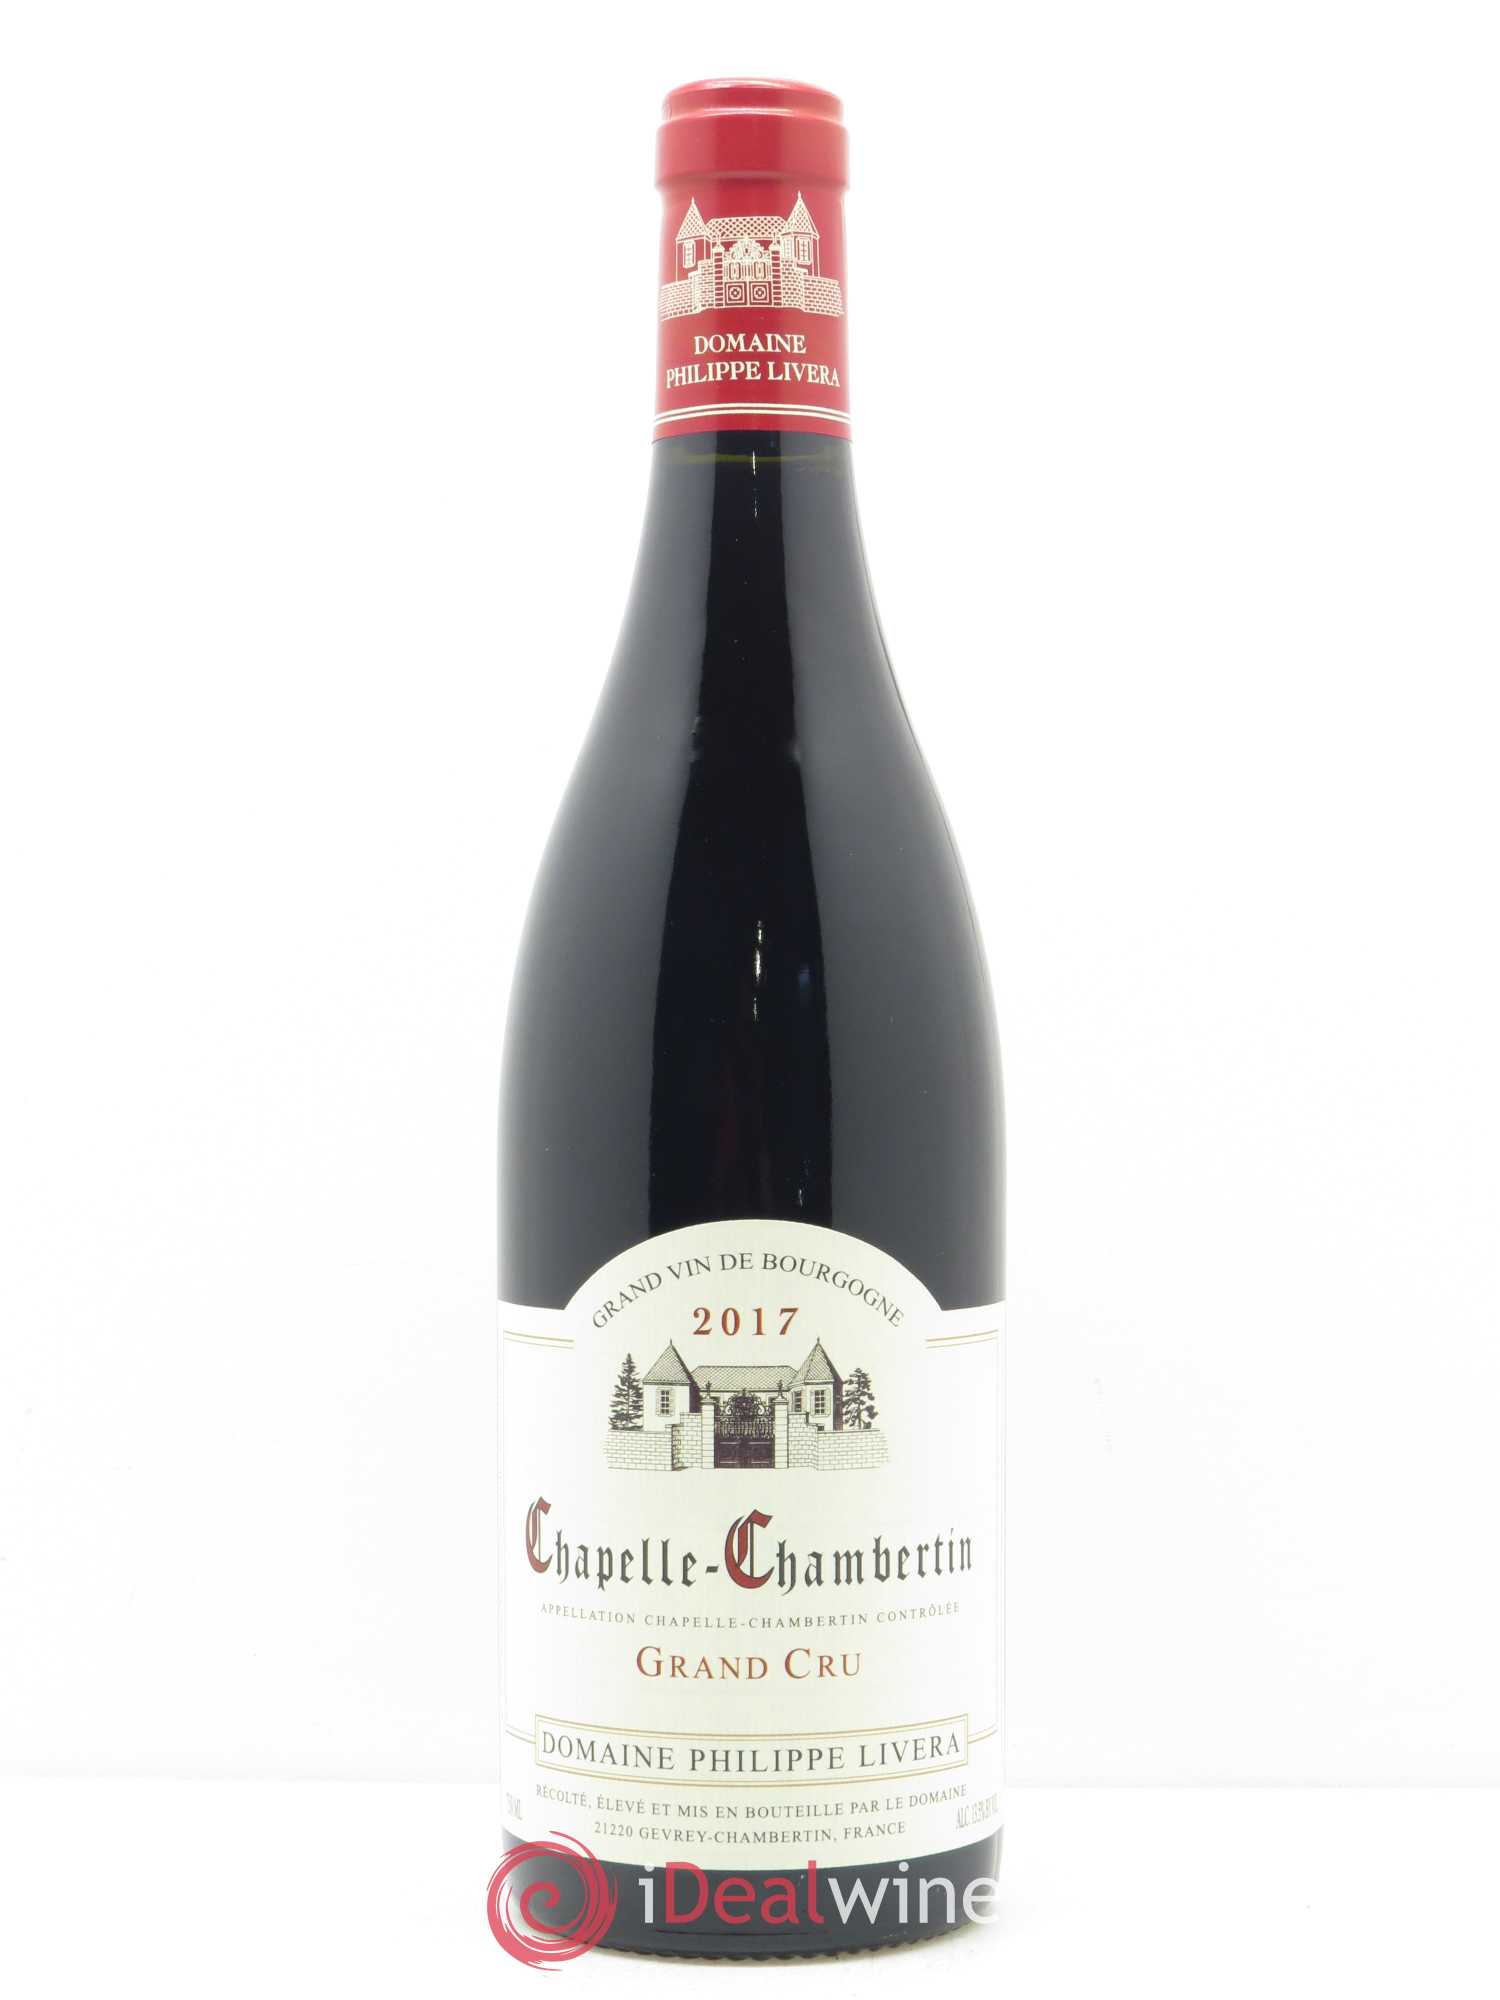 Chapelle-Chambertin Grand Cru Tilleuls (Domaine des) - Philippe Livera  2017 - Lot of 1 Bottle